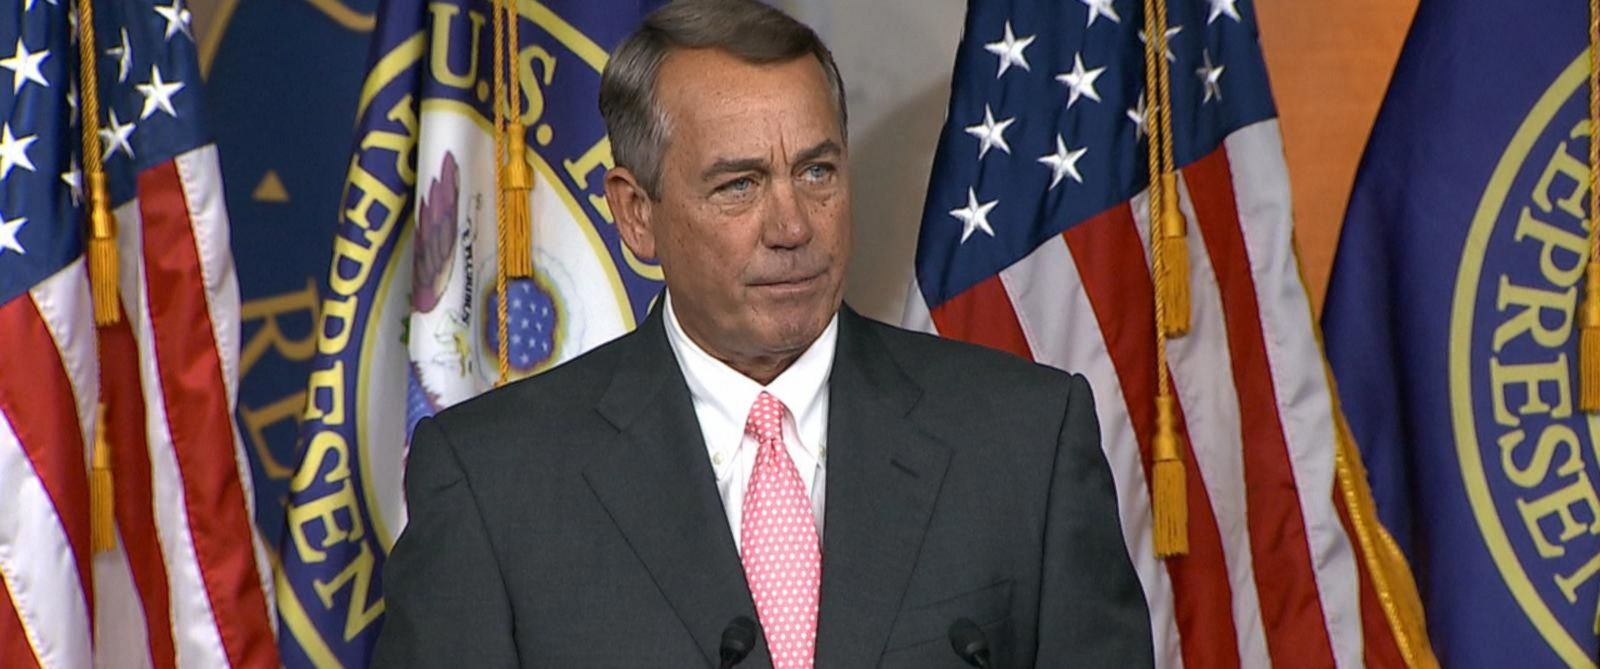 PHOTO: John Boehner speaks at a press conference about his resignation.